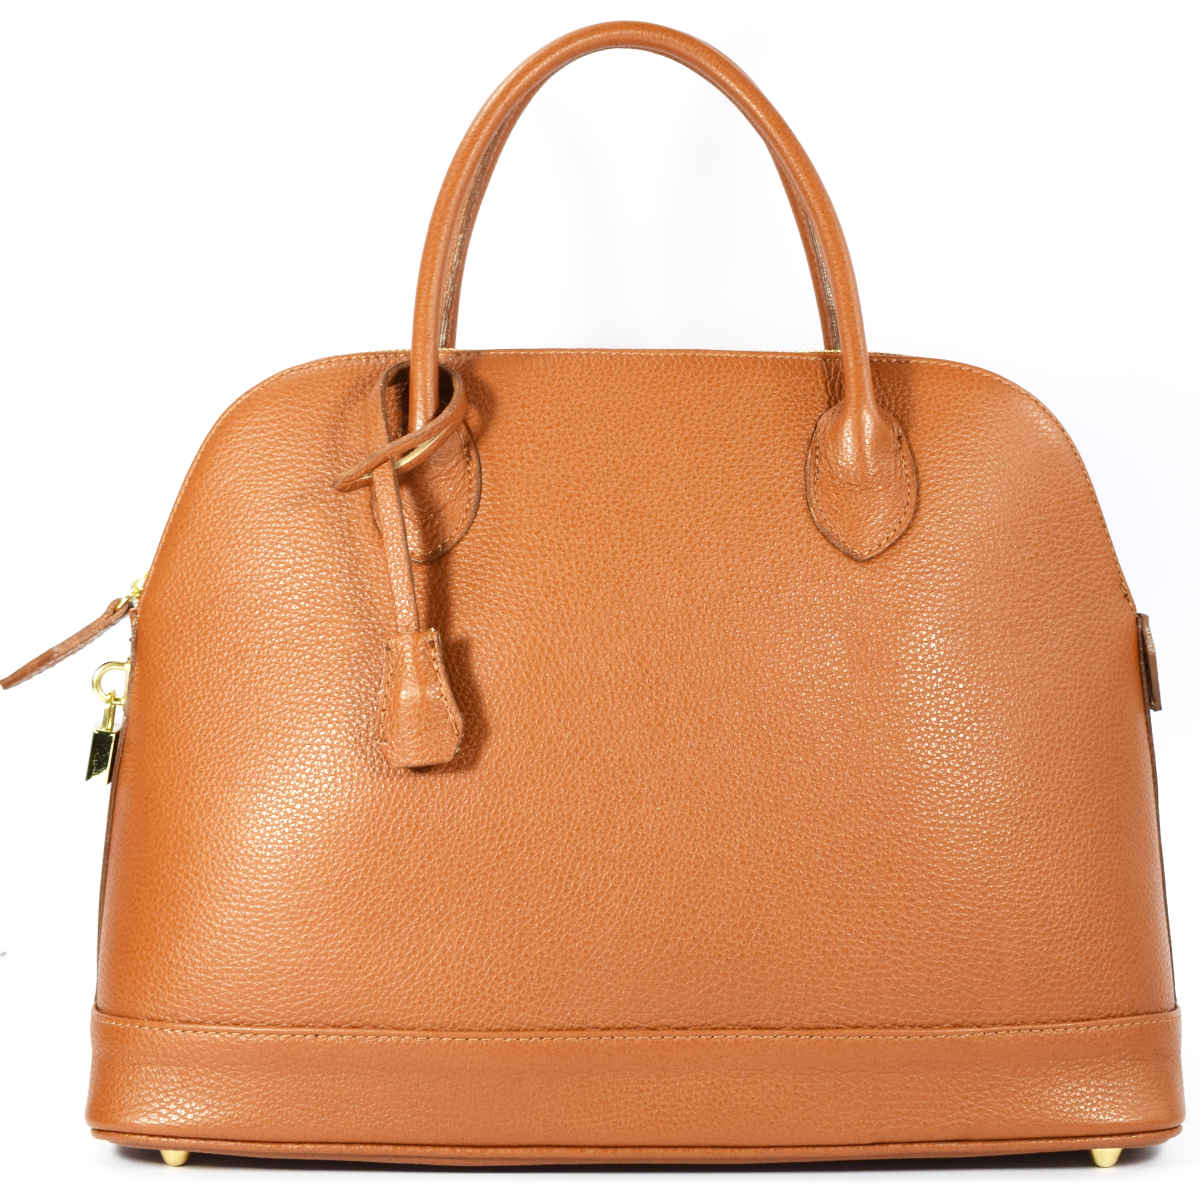 12748 HANDBAG by Bottega Fiorentina